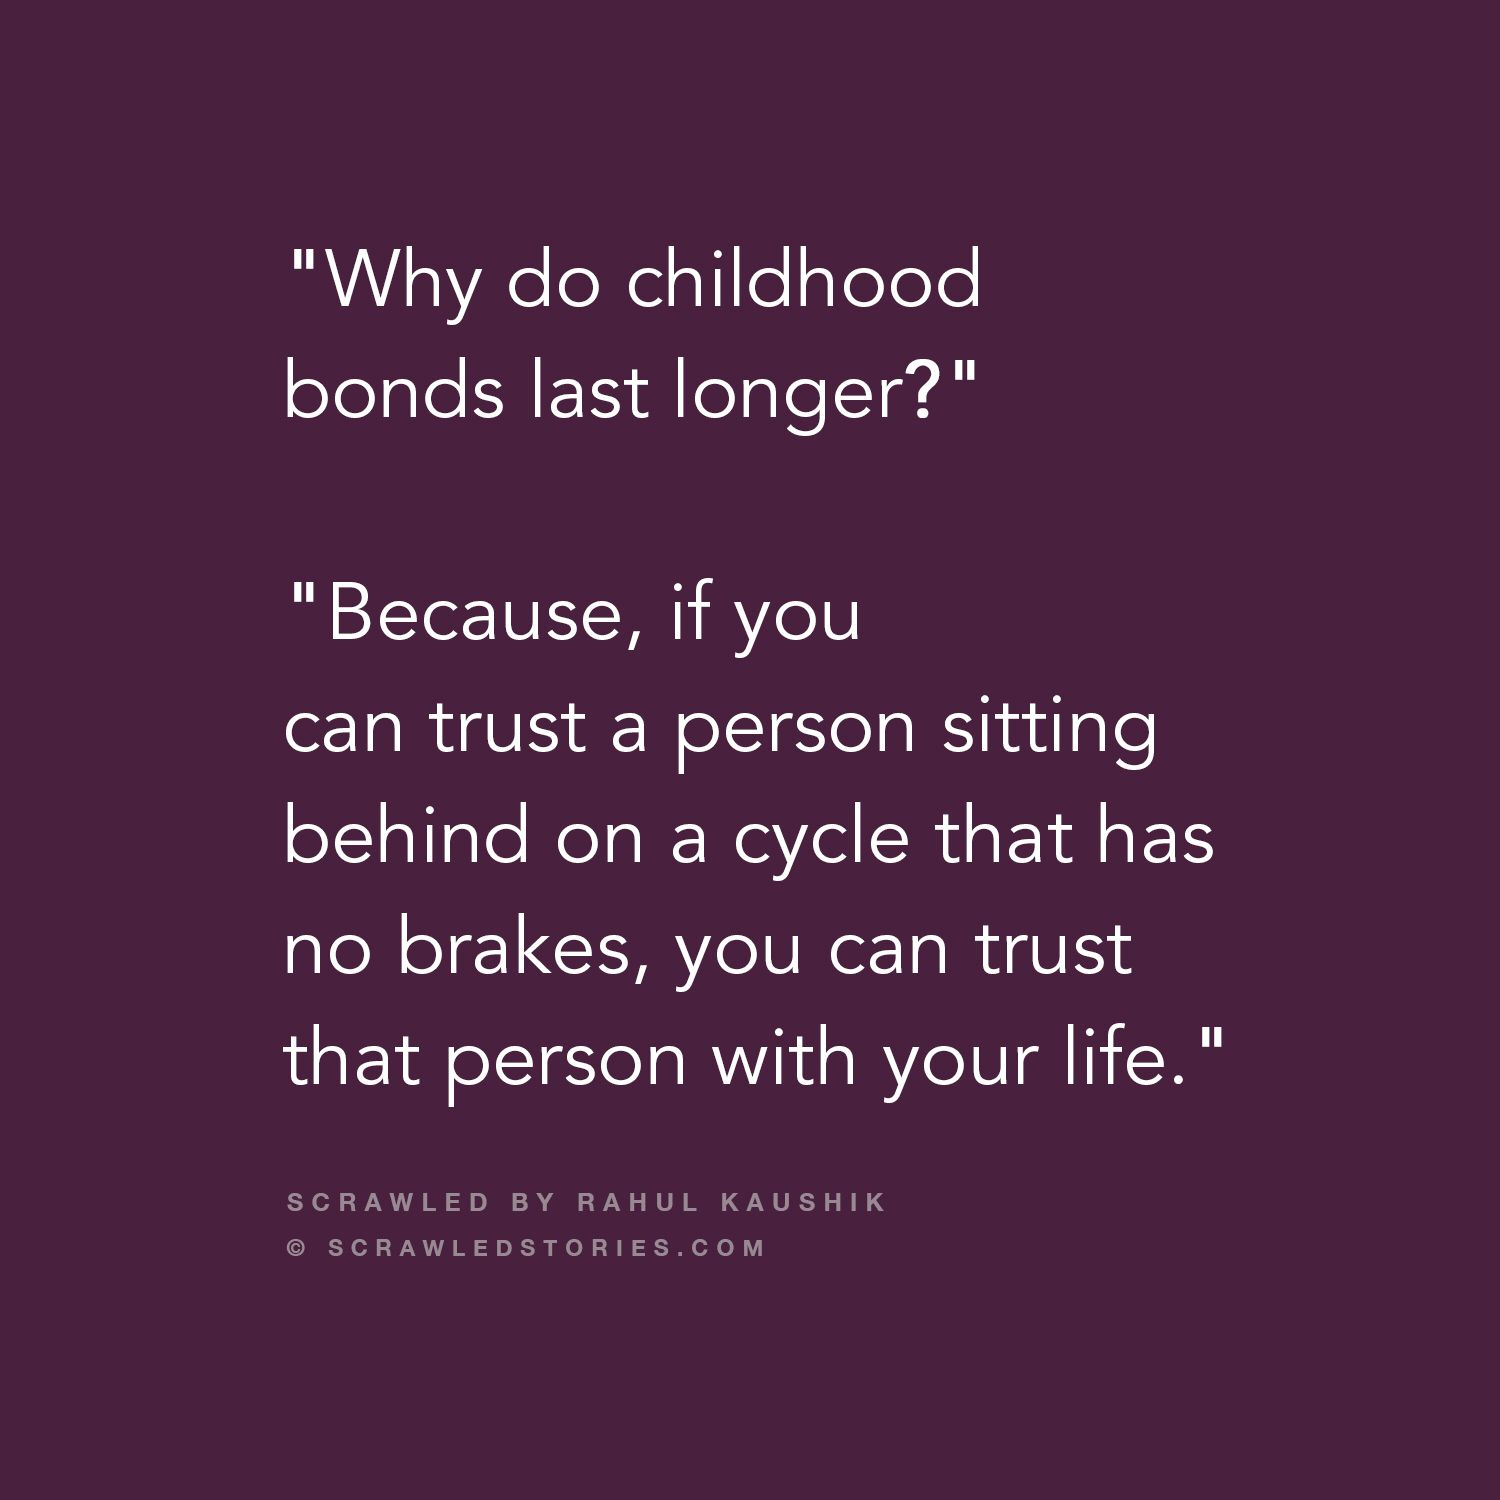 Childhood Friends Quotes For More Amazing Posts Like This Check Out Scrawledstories Com Childhood Friends Quotes Friends Quotes Childhood Friendship Quotes